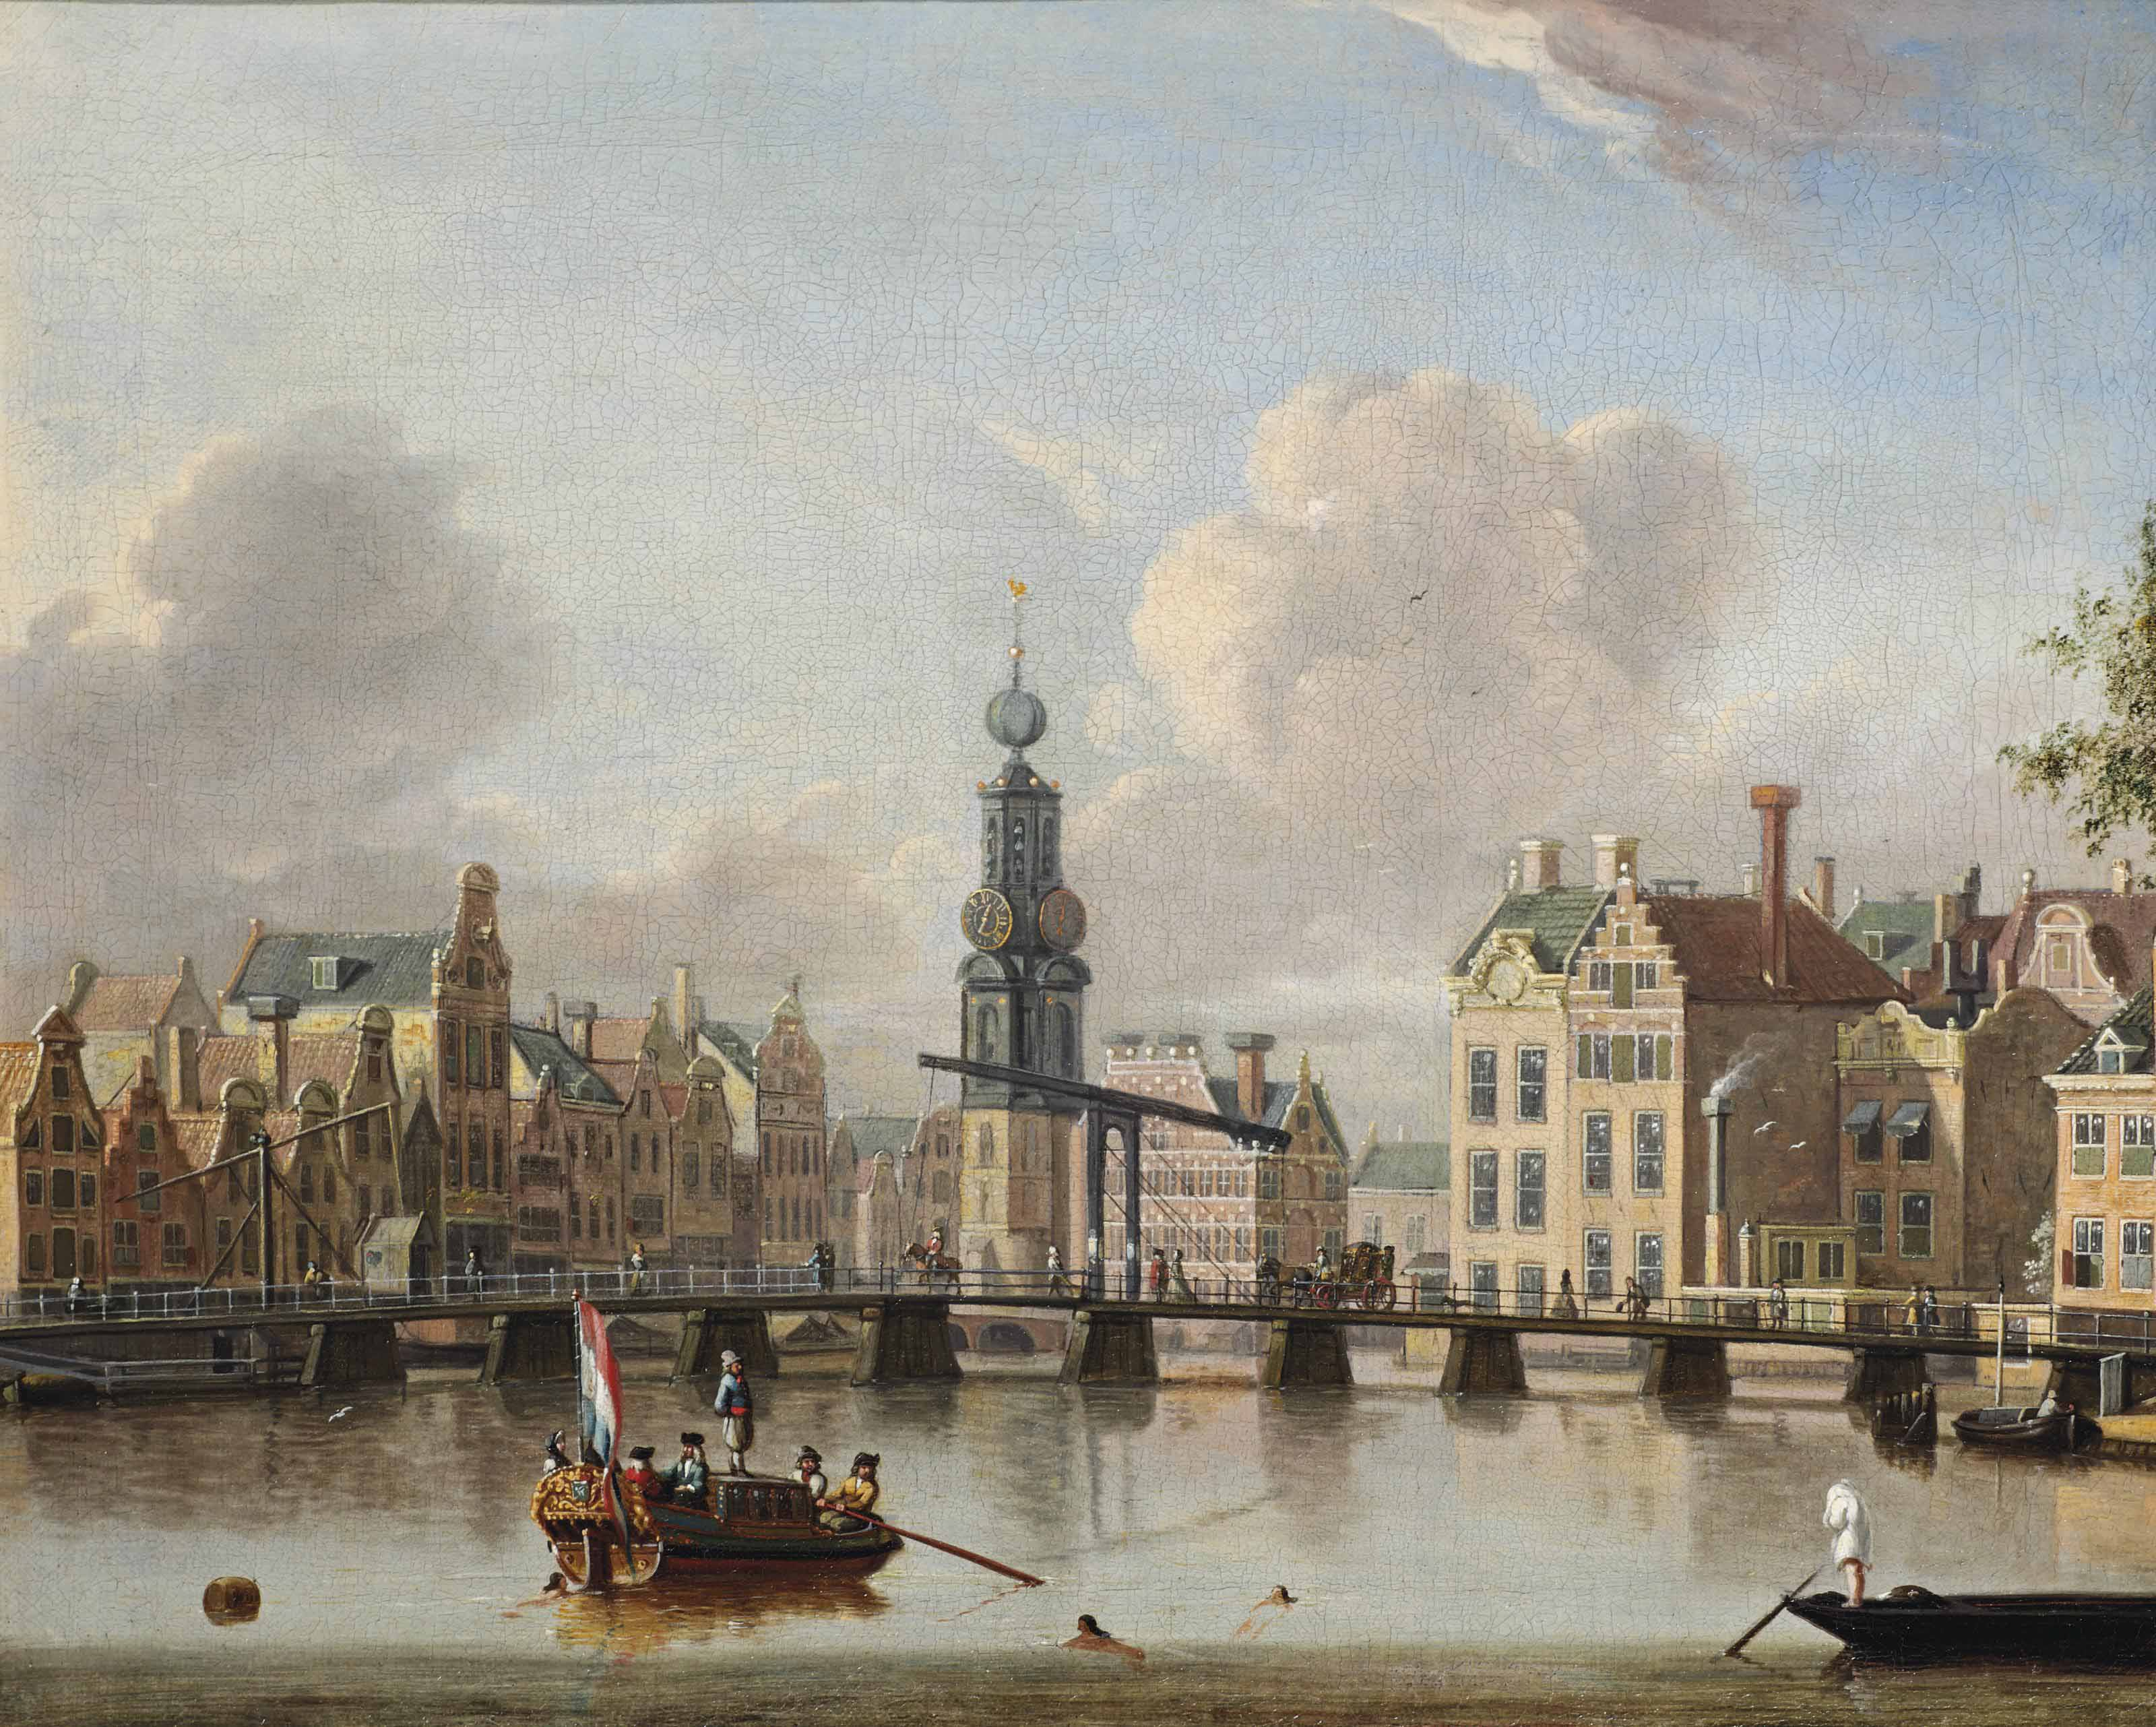 A view of the Munt, Amsterdam with figures in boats and swimming in the canal